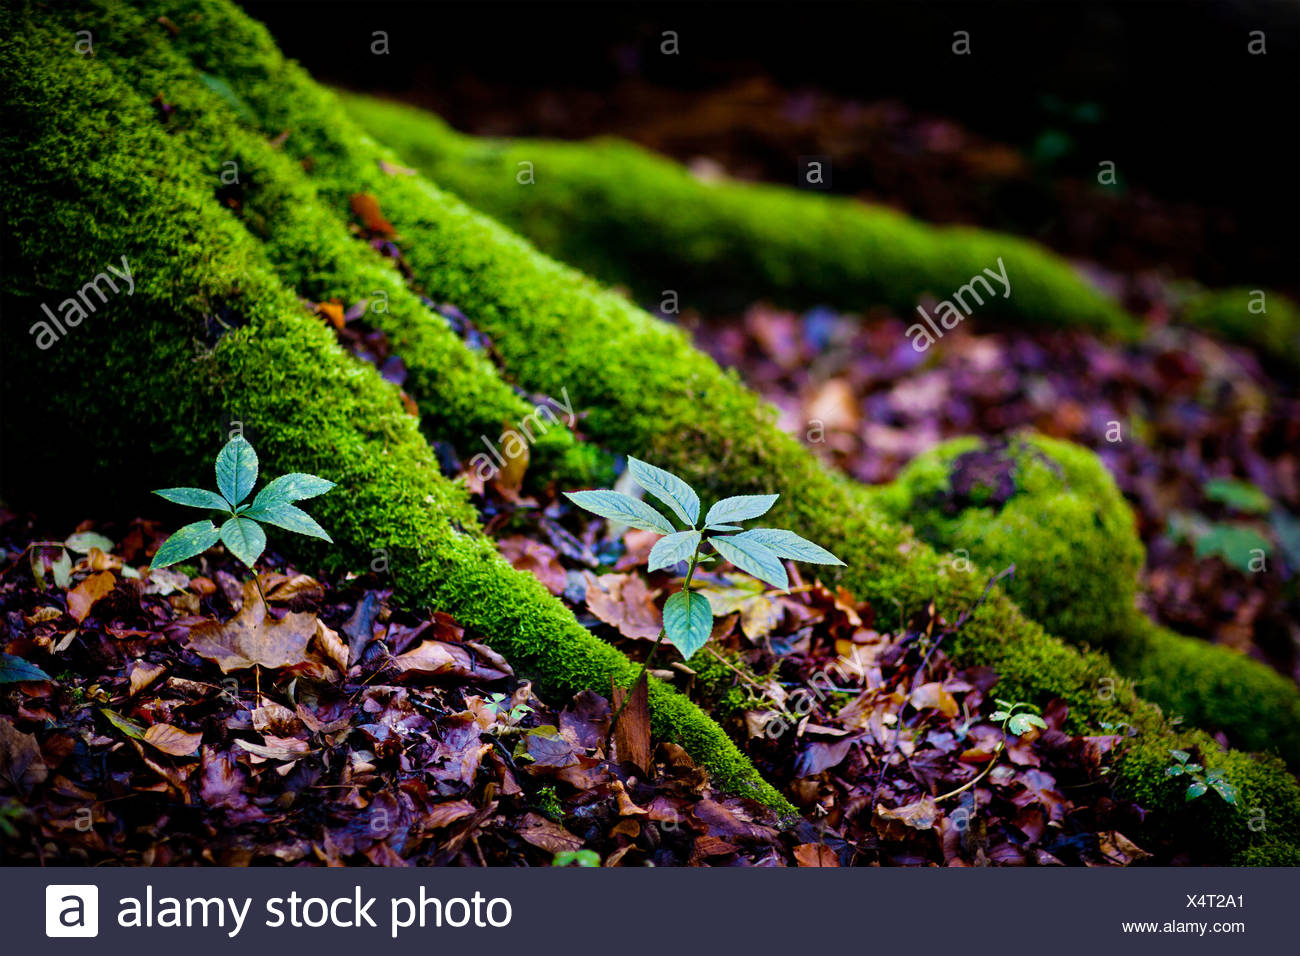 Moss on tree roots - Stock Image